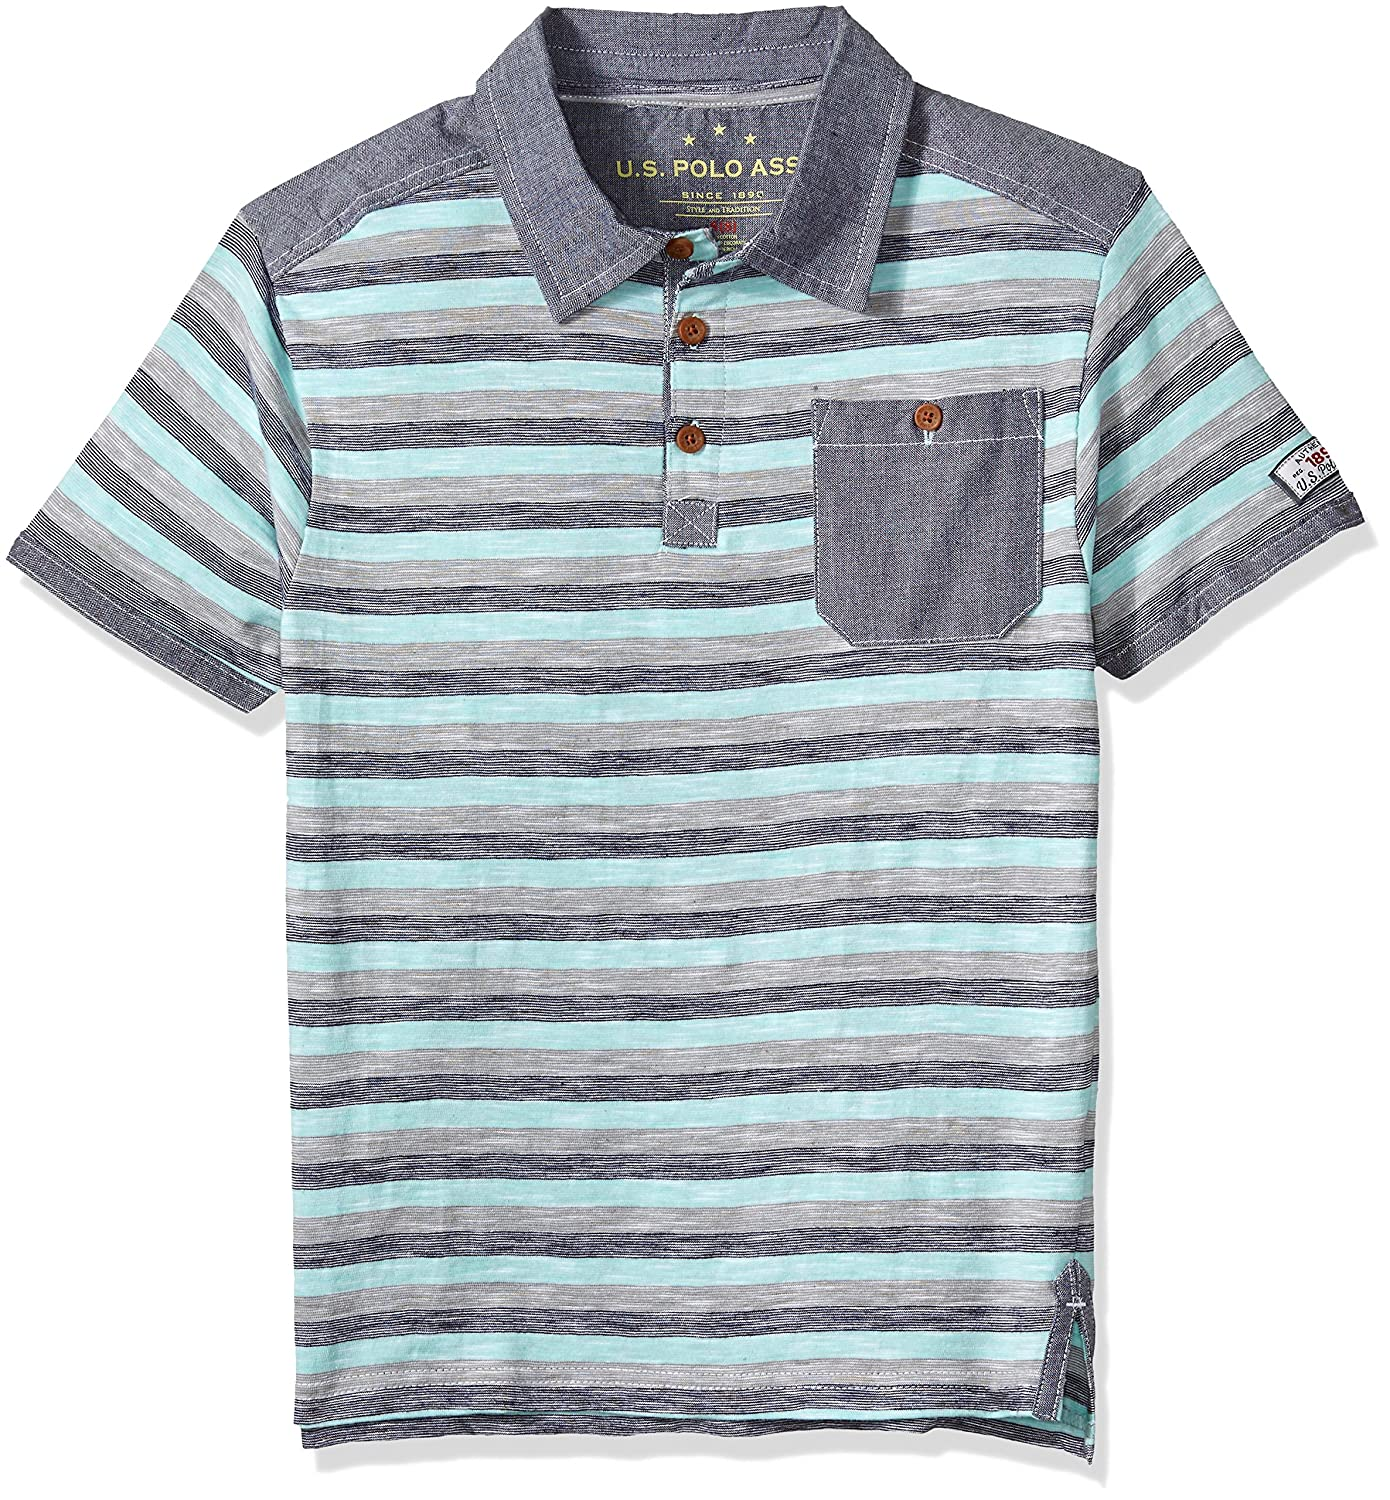 U.S. Polo Assn. Boys Short Sleeve Striped Polo Shirt